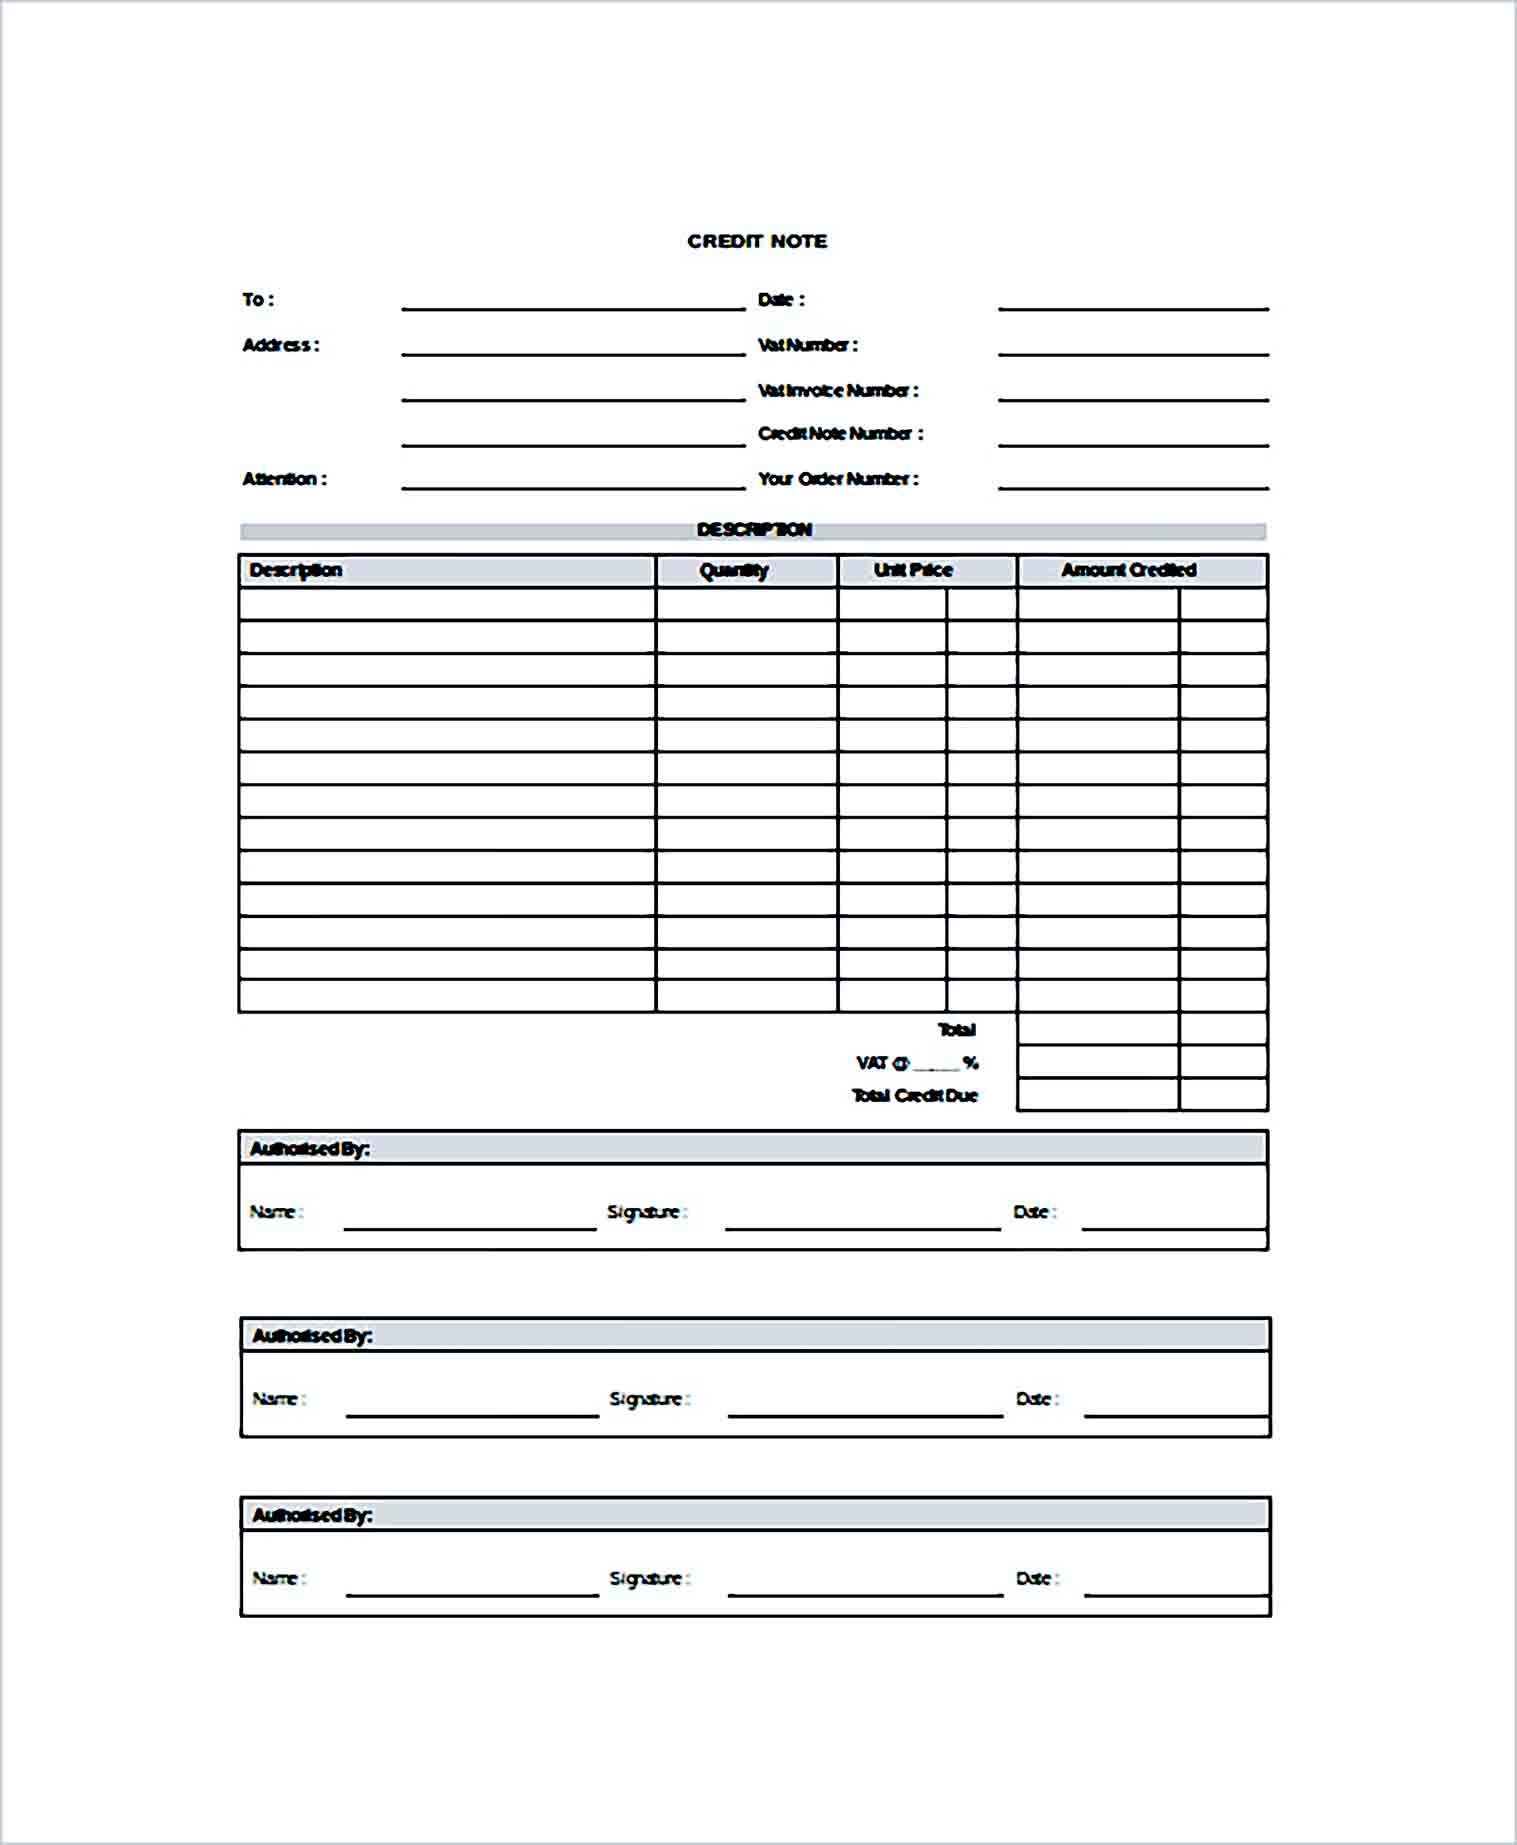 Sample Credit Note Doc Format